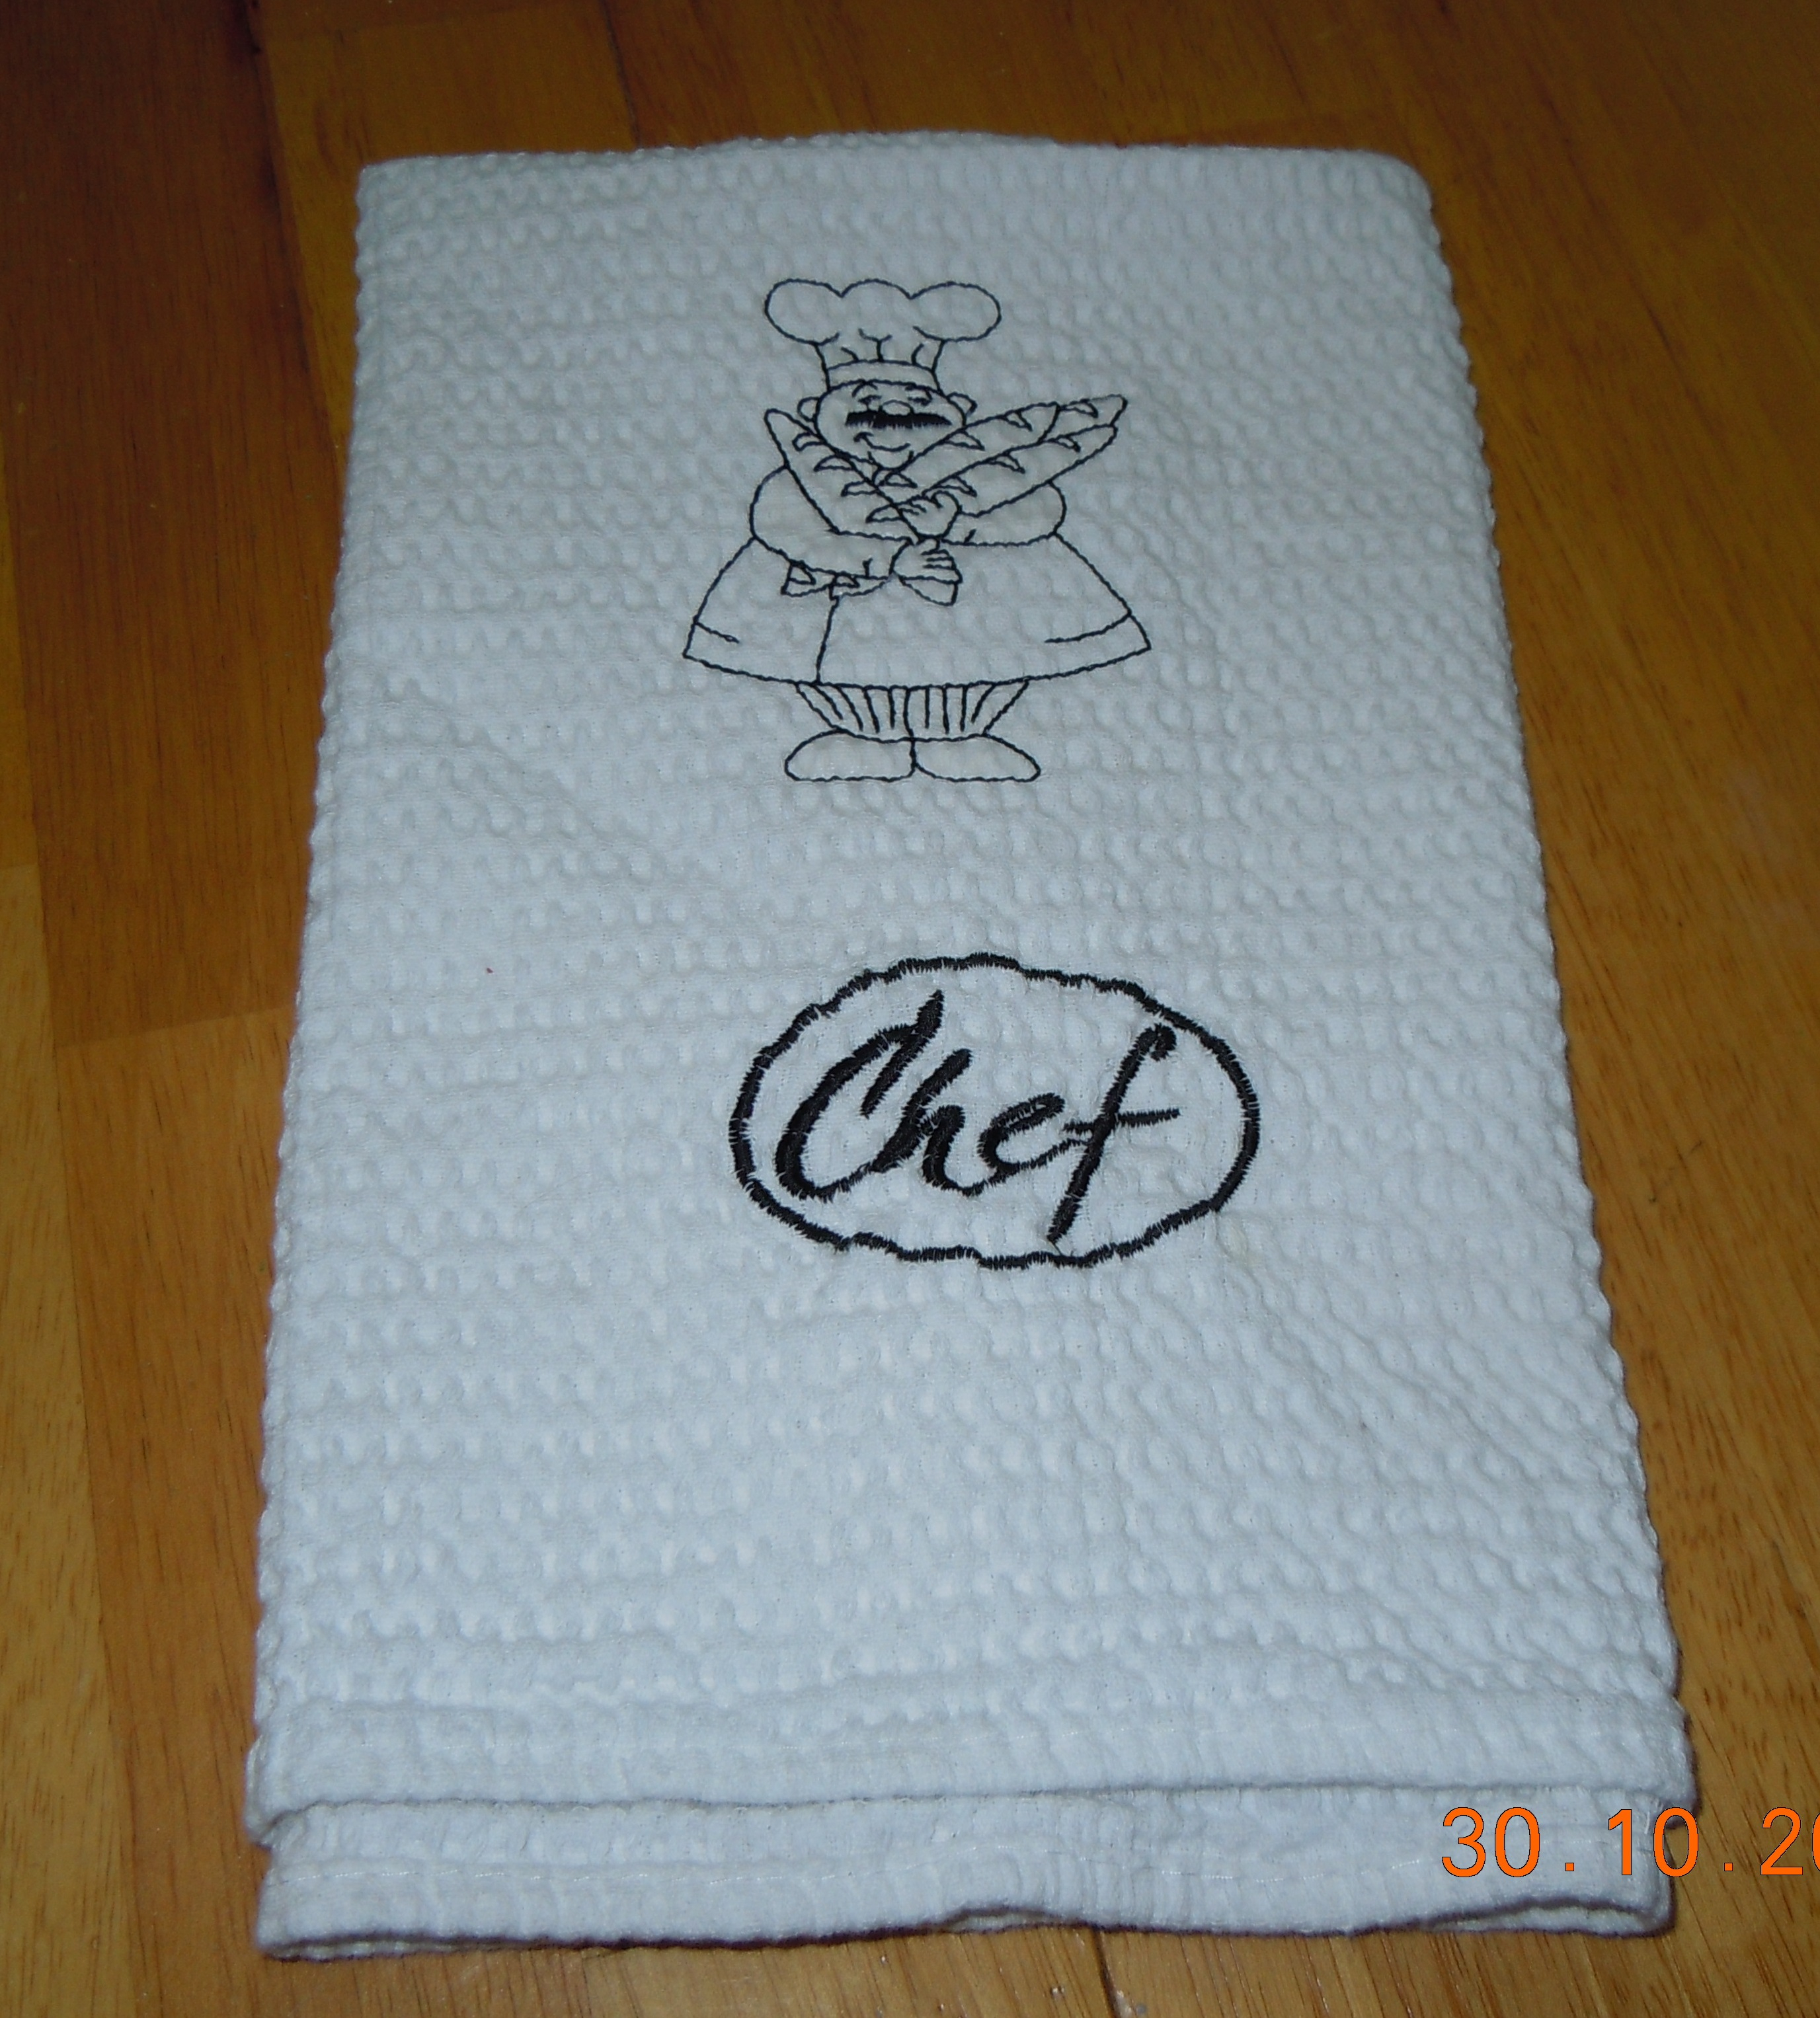 Kitchen Towel Embroidery Patterns Free Embroidery Designs Cute Embroidery Designs